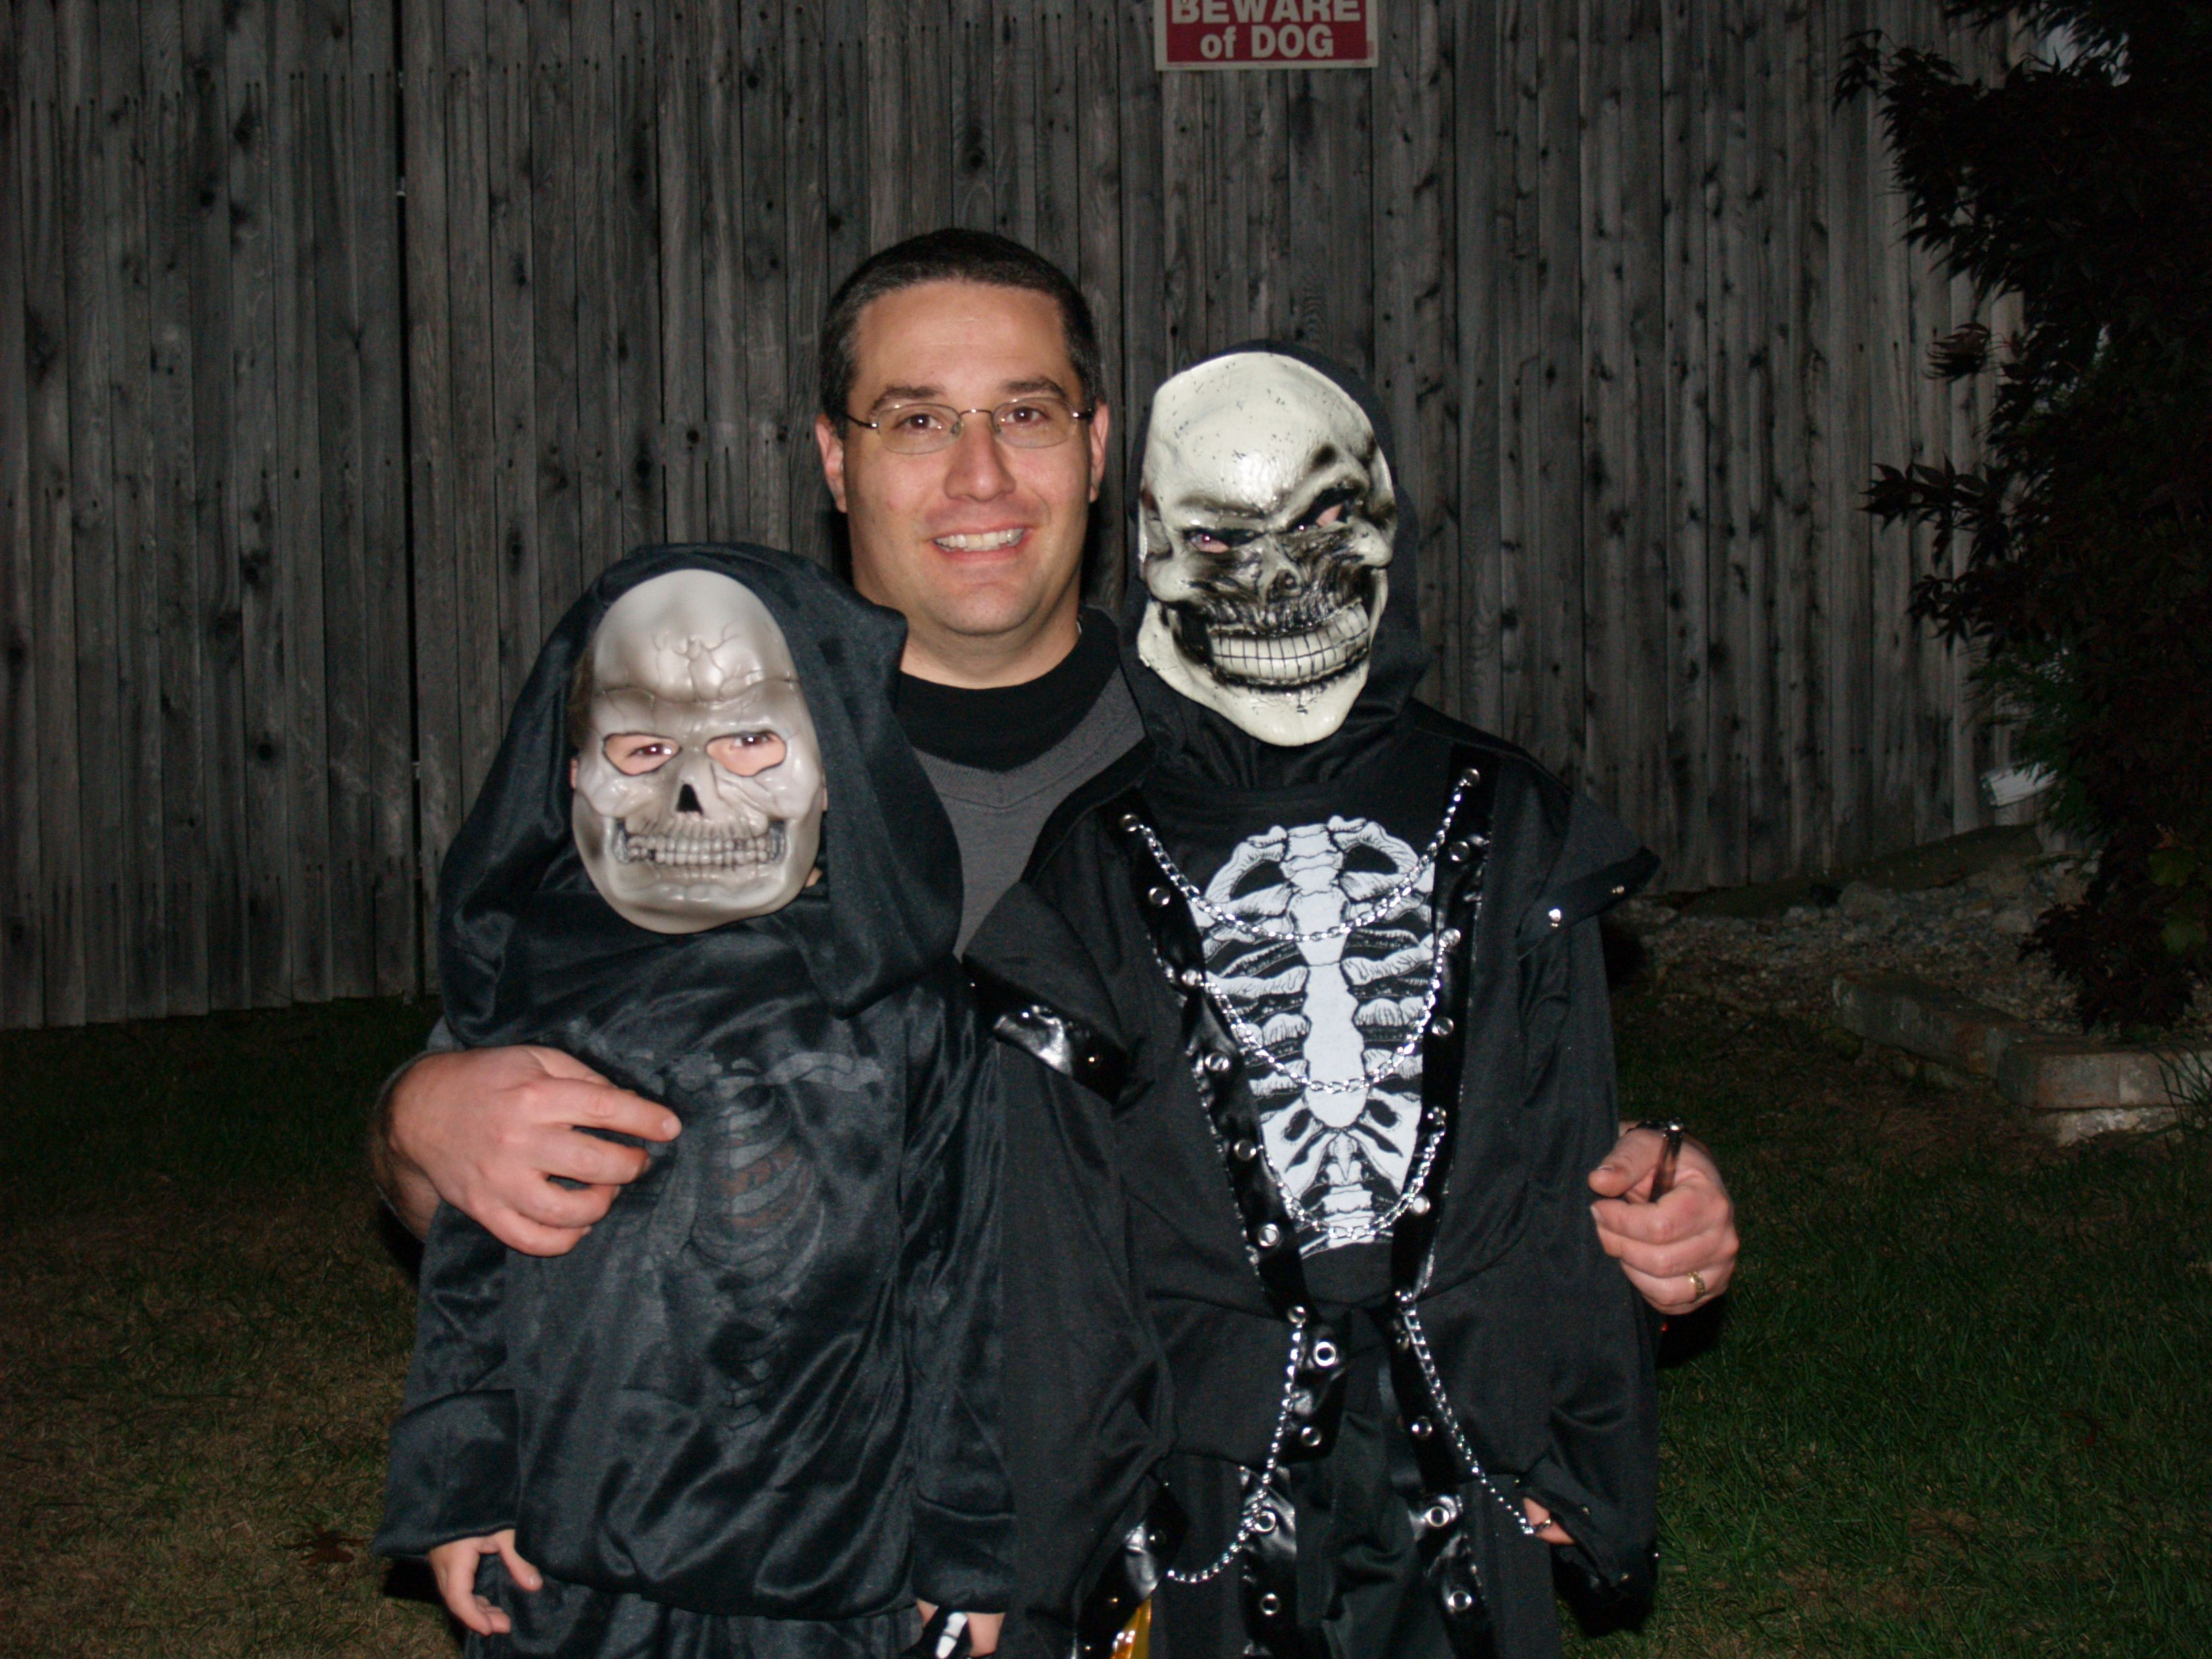 me and the boys getting ready for a good night of scaring people